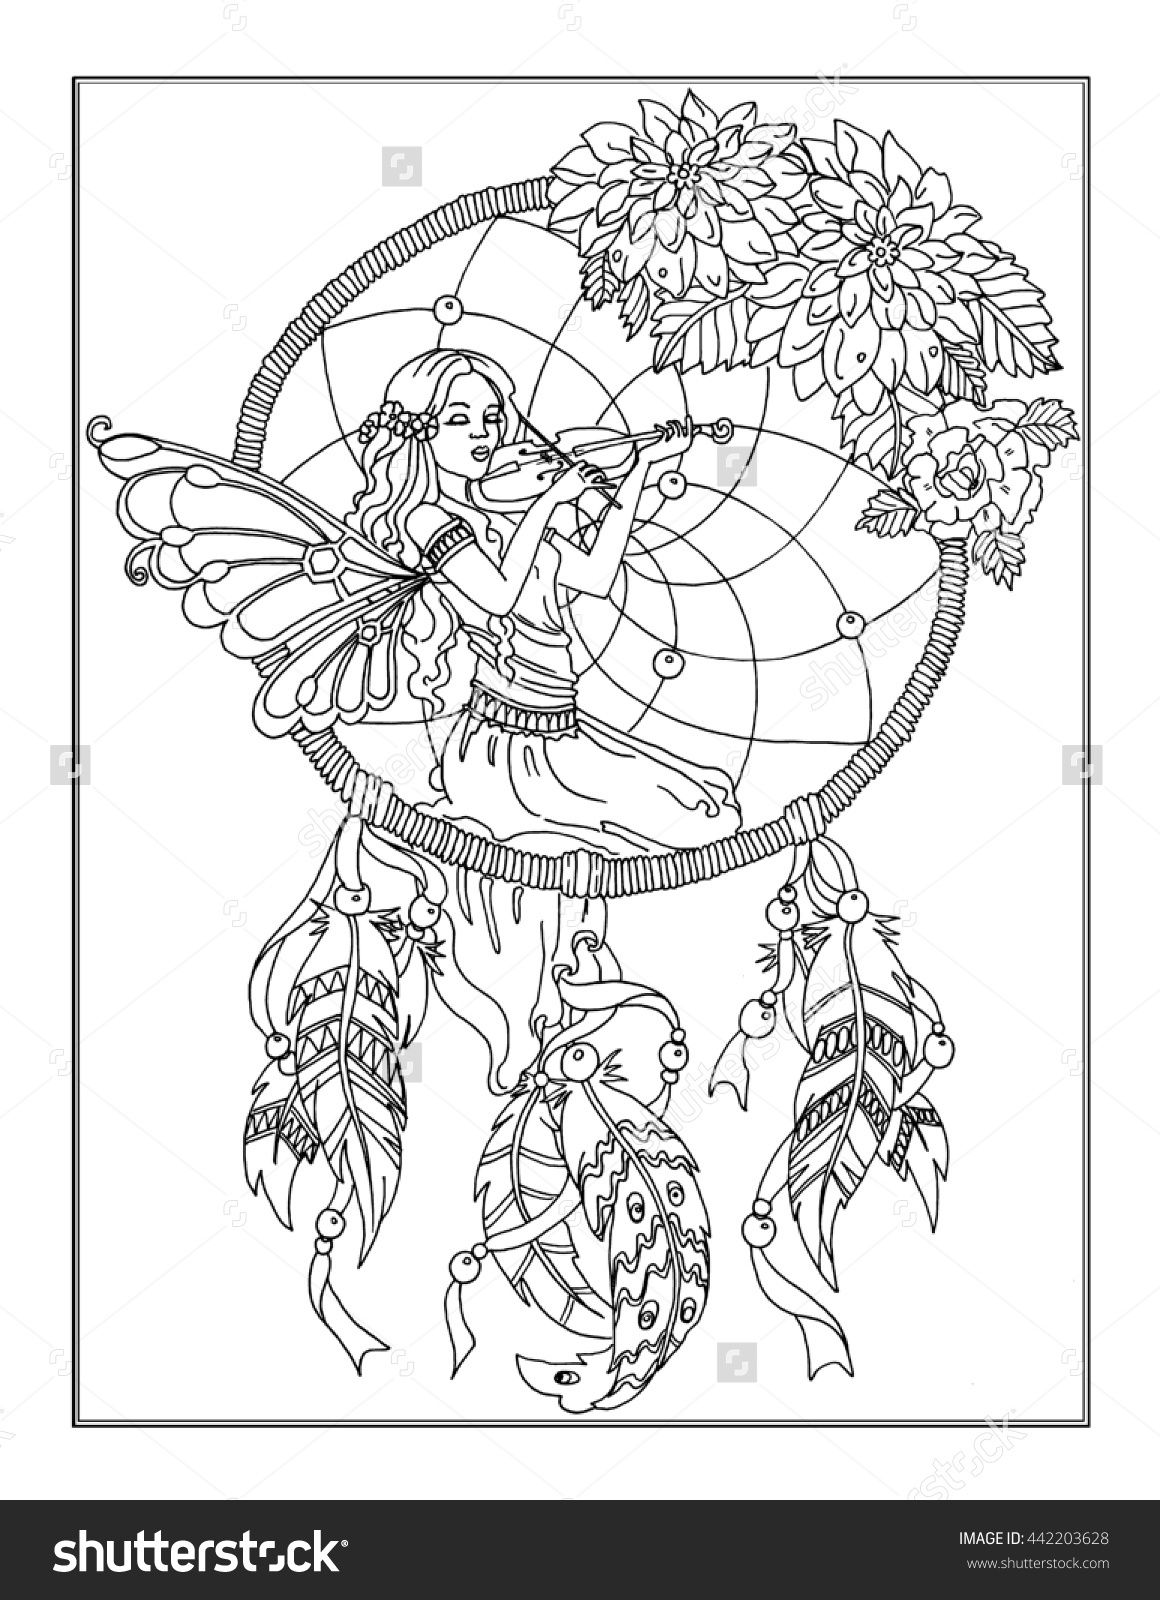 fairy horse coloring pages fairy coloring page source razukrasxytorokru fairy coloring horse pages fairy